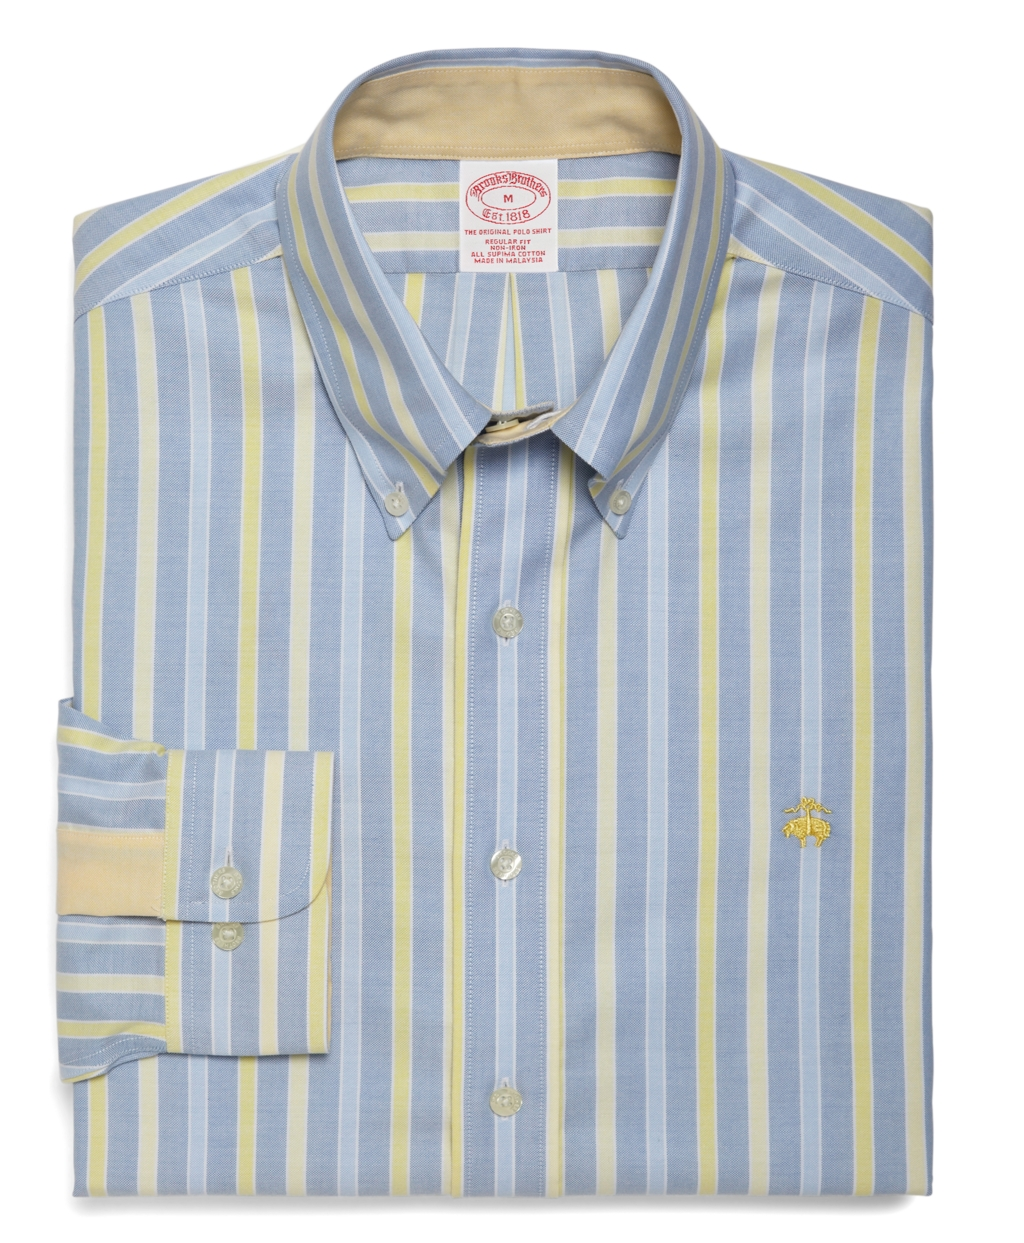 Brooks brothers non iron regular fit alternating framed Brooks brothers shirt size guide